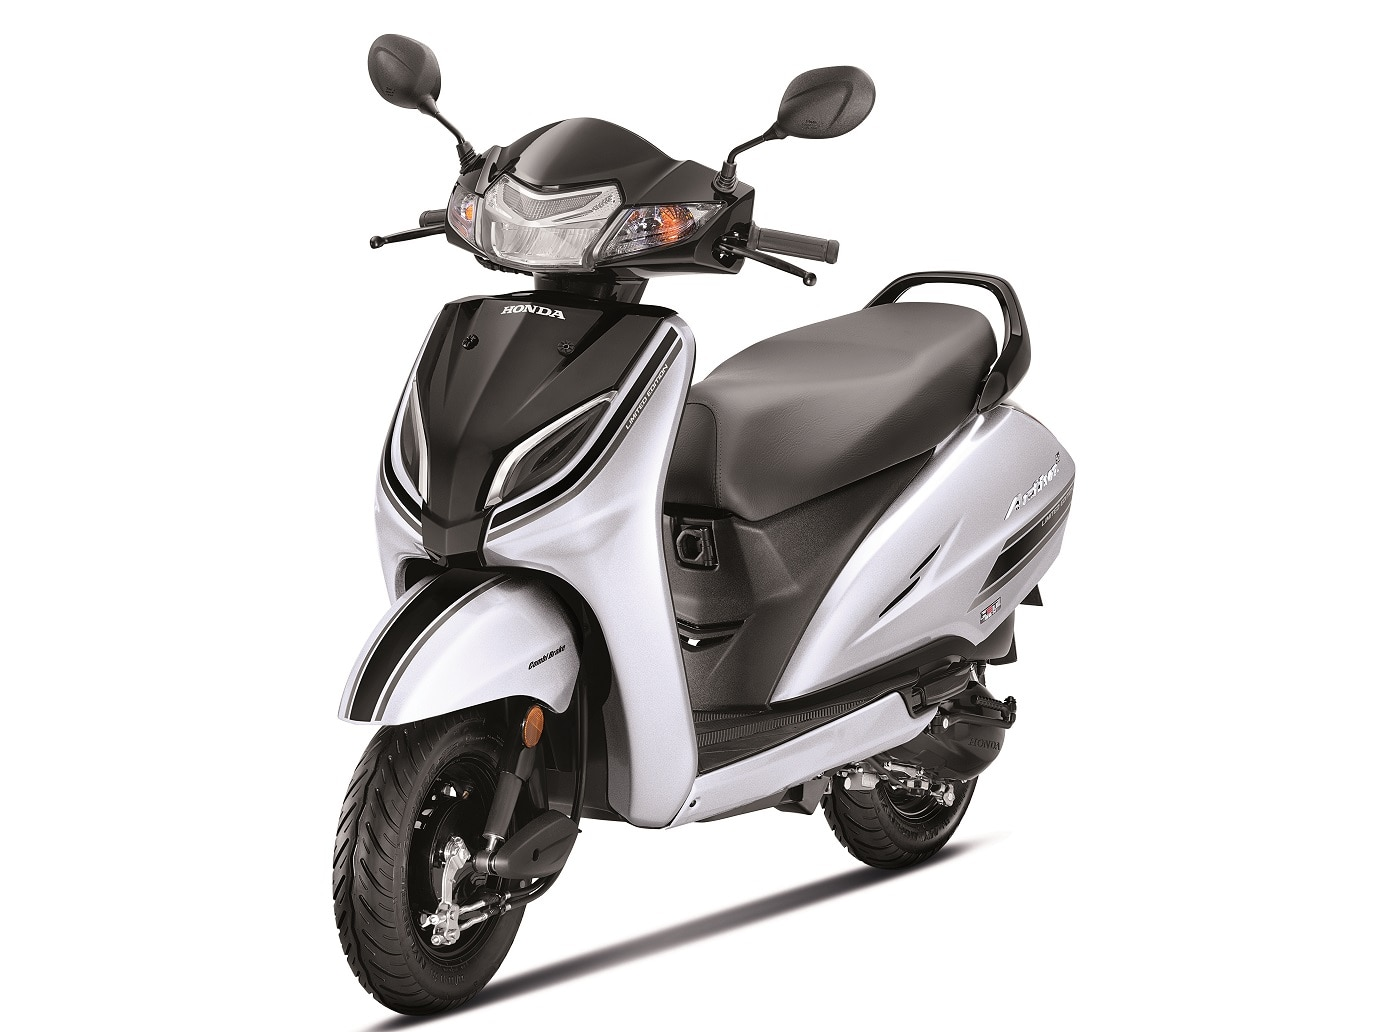 Honda Activa Remains Unbeaten For The First Half Of 2019